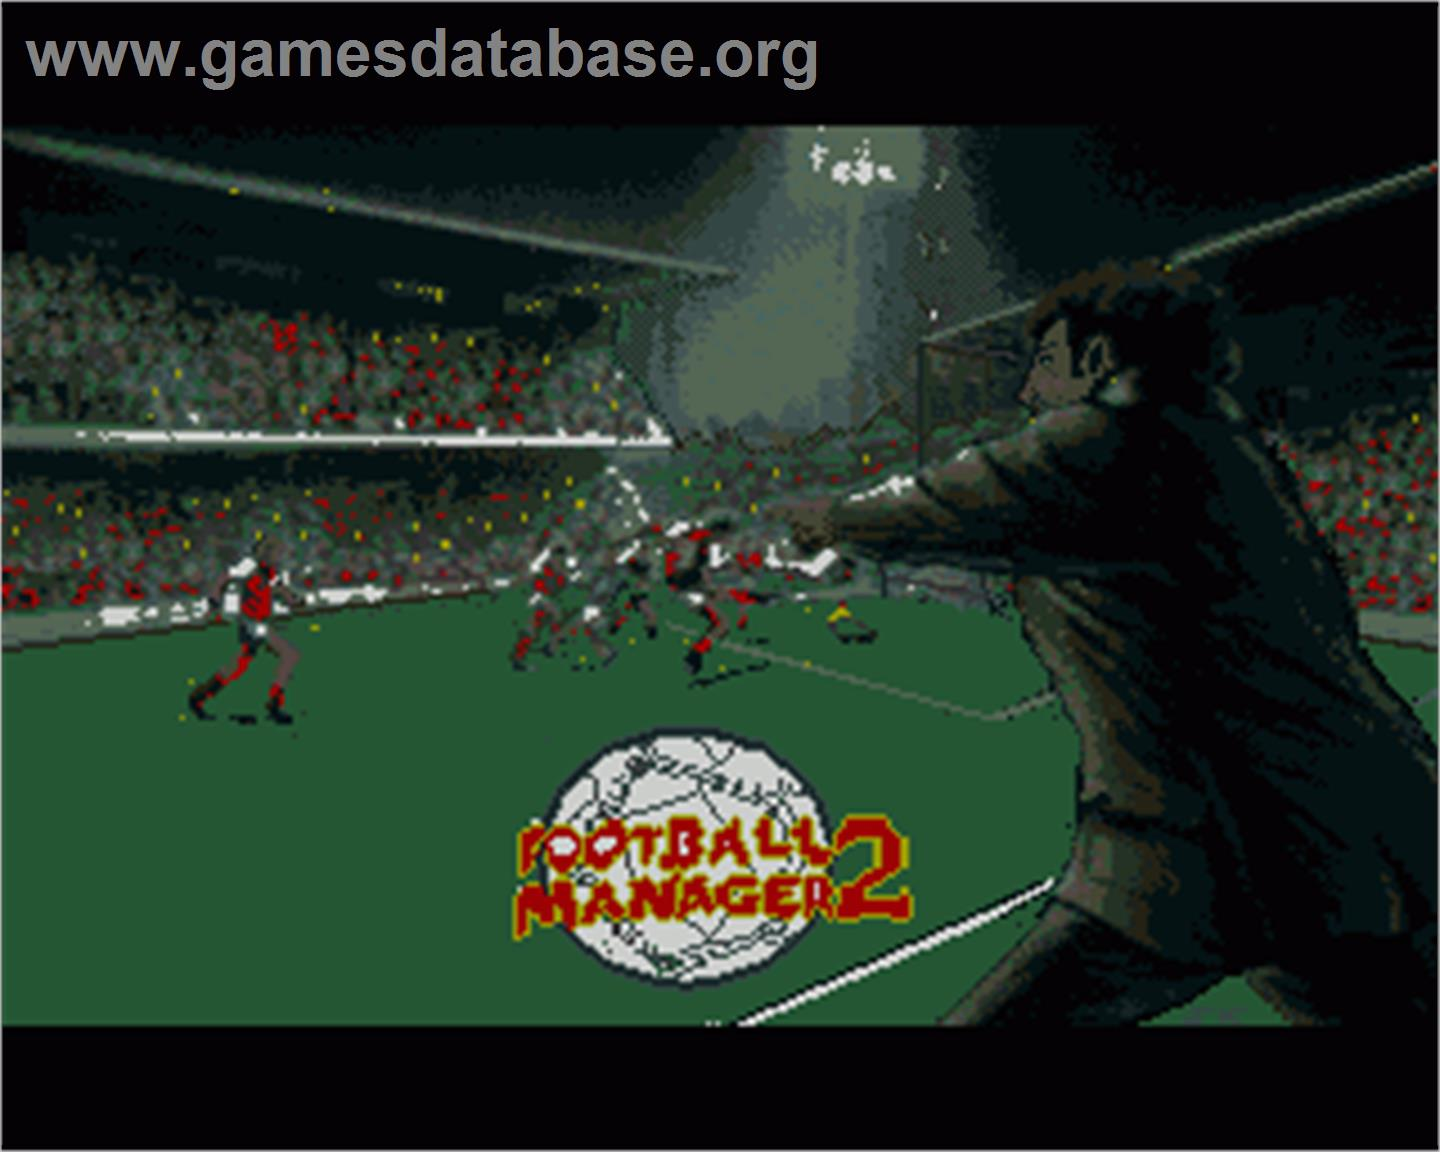 Football Manager 2 - Commodore Amiga - Artwork - In Game